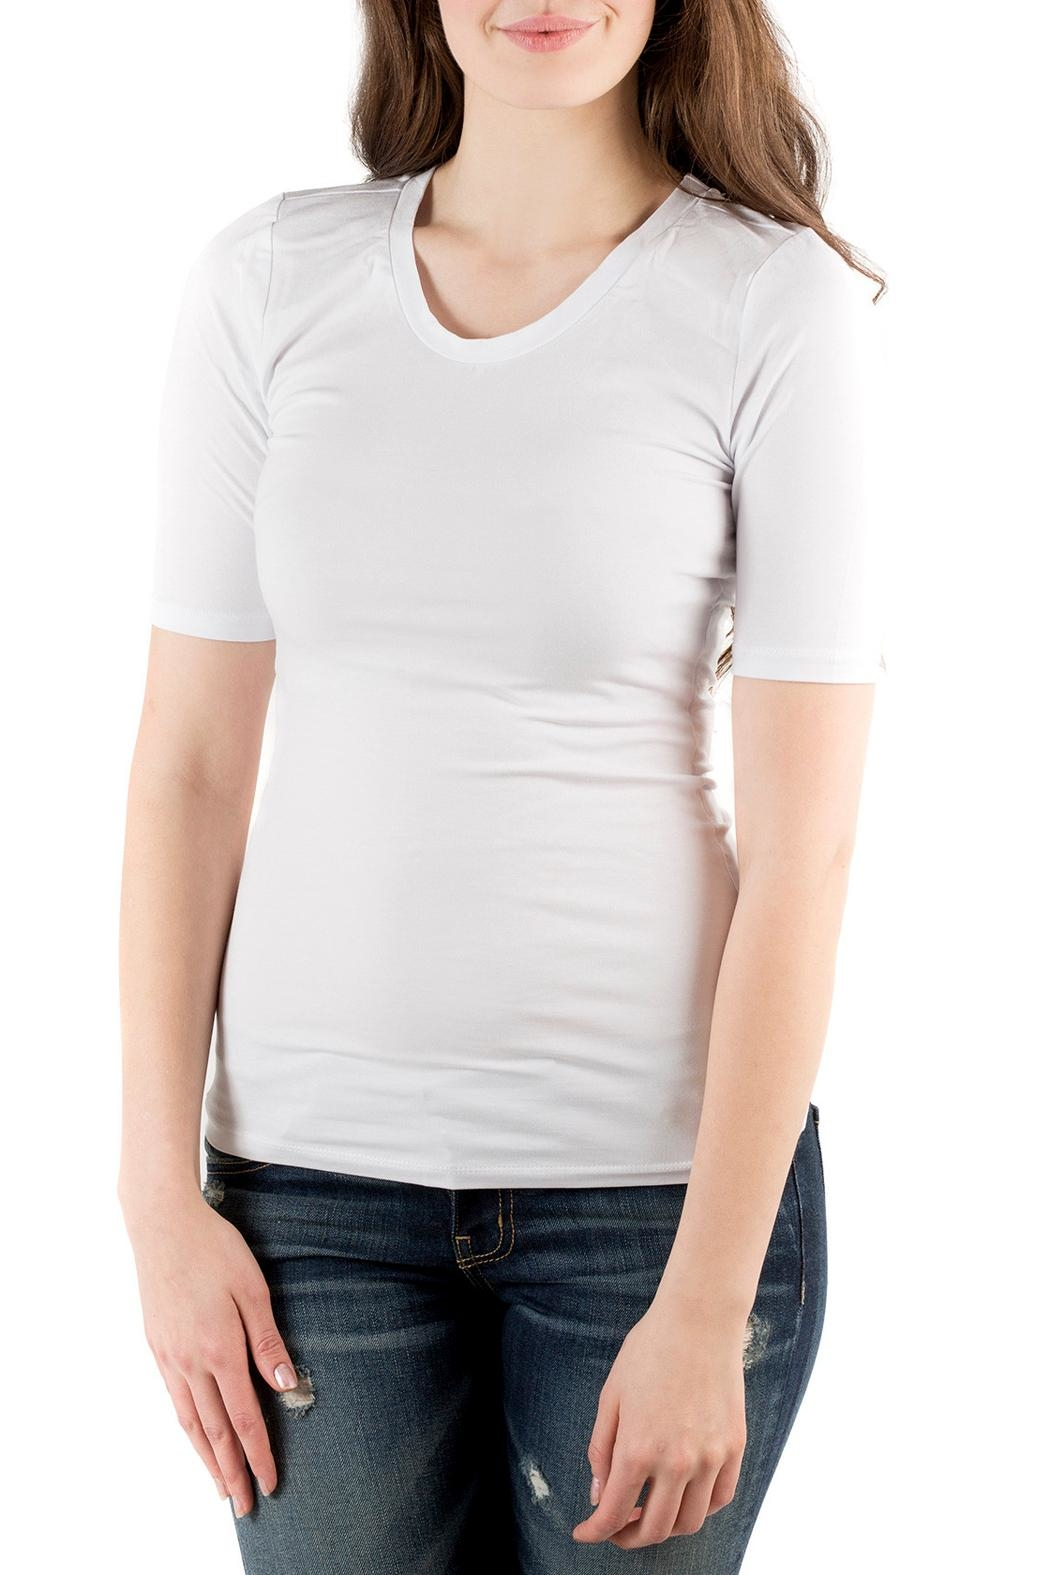 Downeast Basics Half Sleeve Top - Front Cropped Image